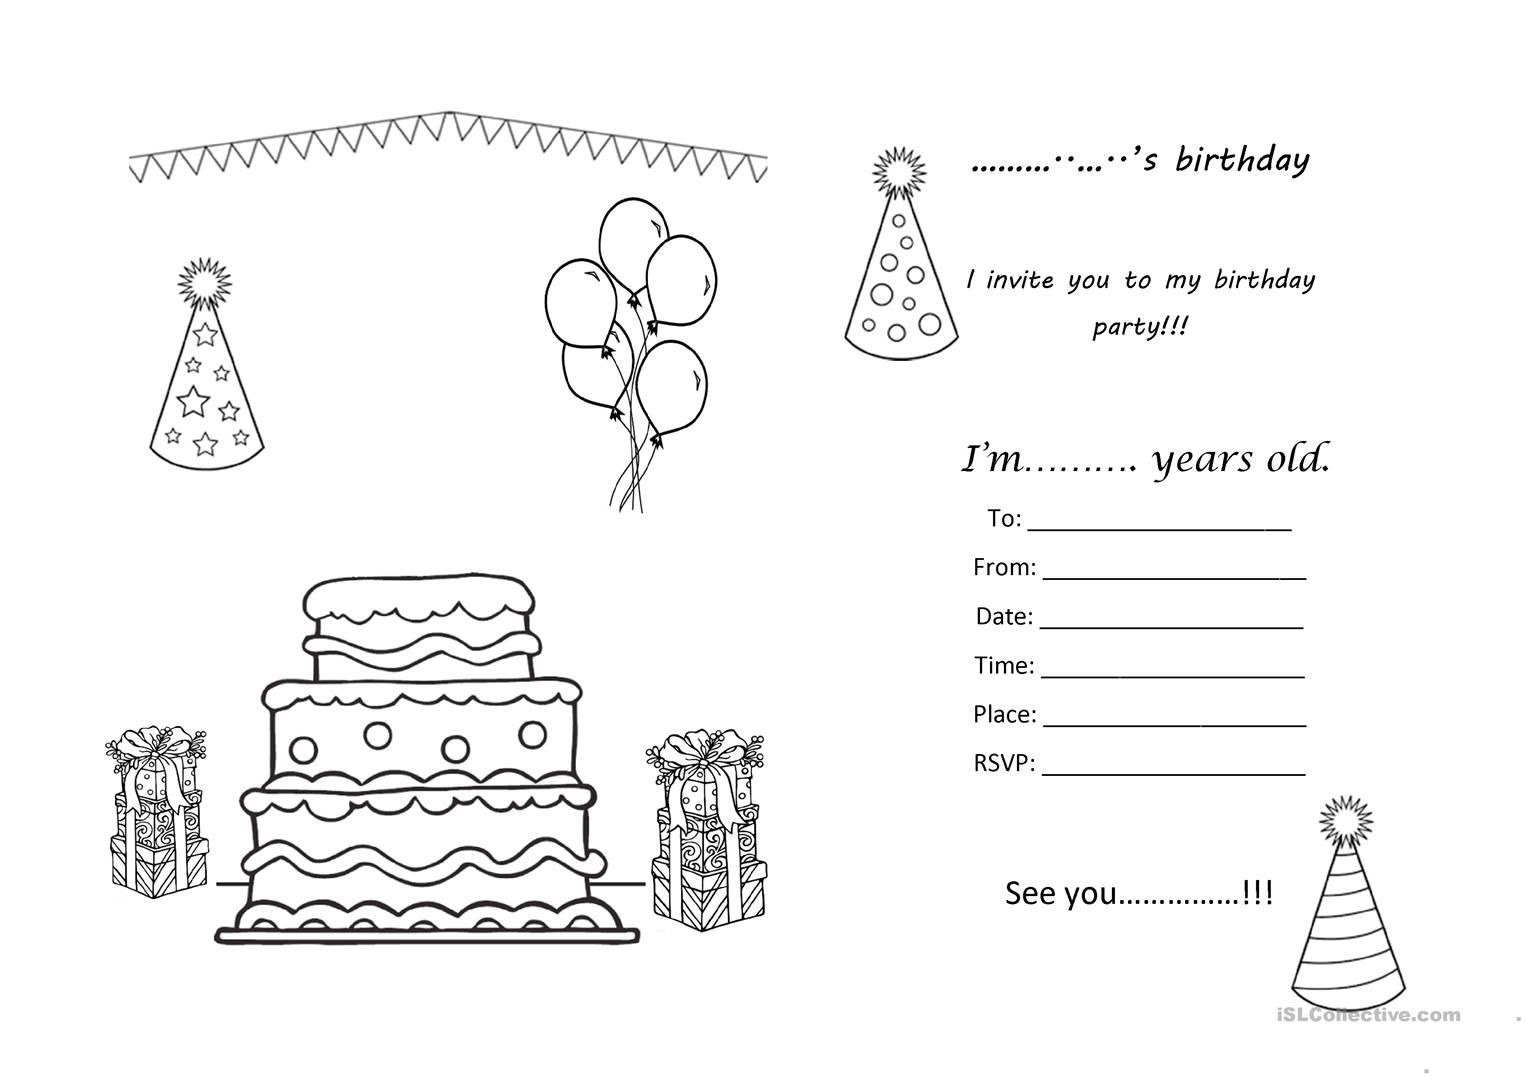 Birthday Party Invitation Worksheet Free Esl Printable Worksheets Made By Teachers Party Invitations Birthday Party Invitations Teacher Birthday [ 1080 x 1527 Pixel ]